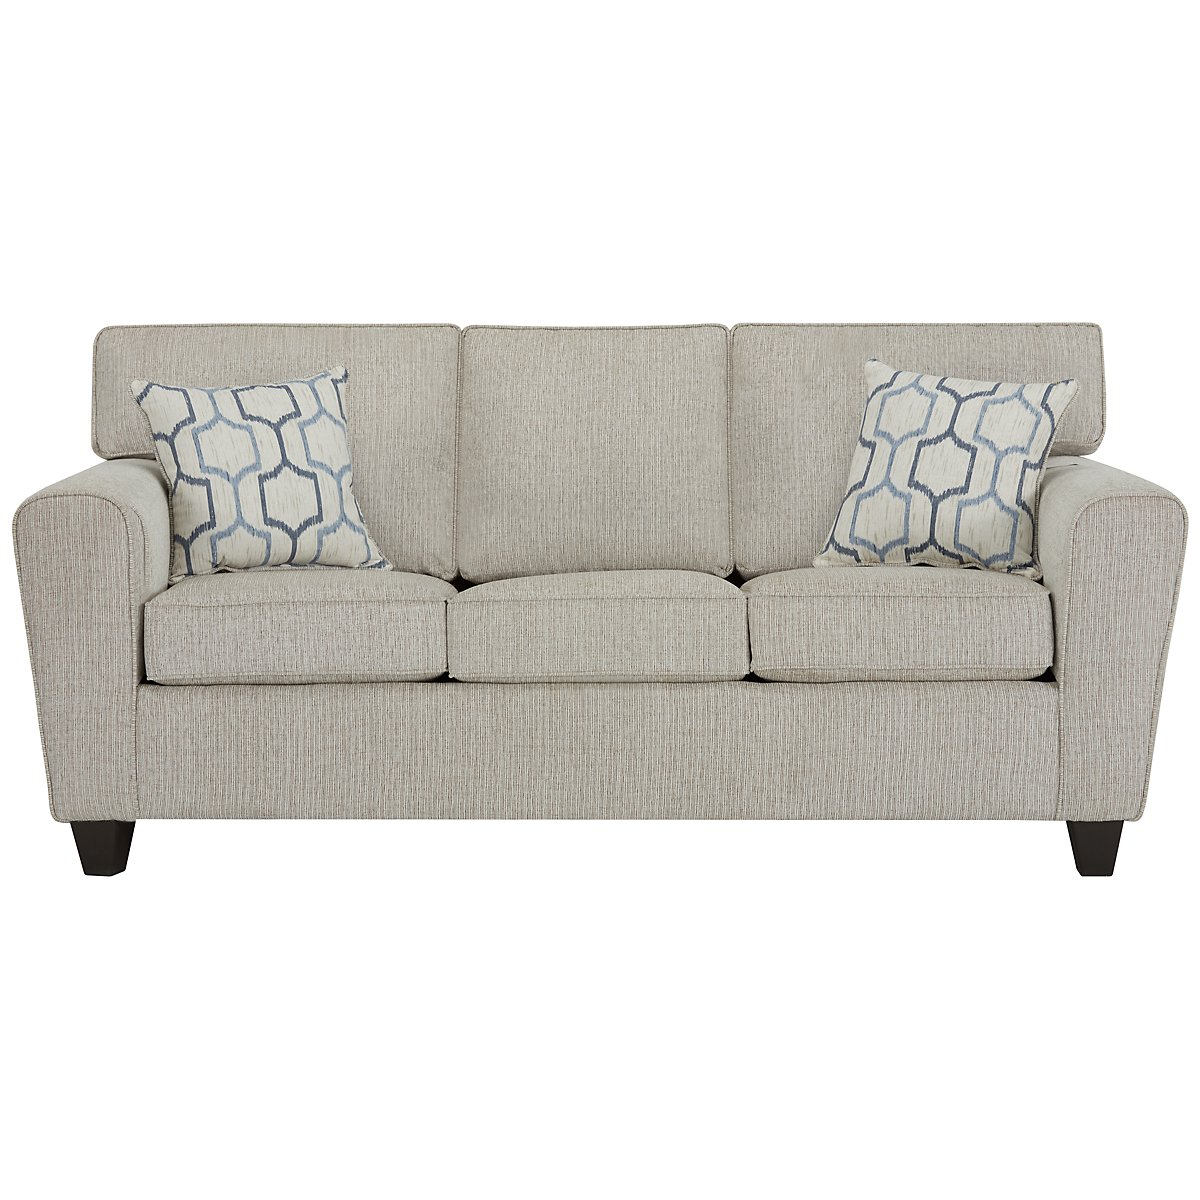 Zoey Light Beige Microfiber Sofa